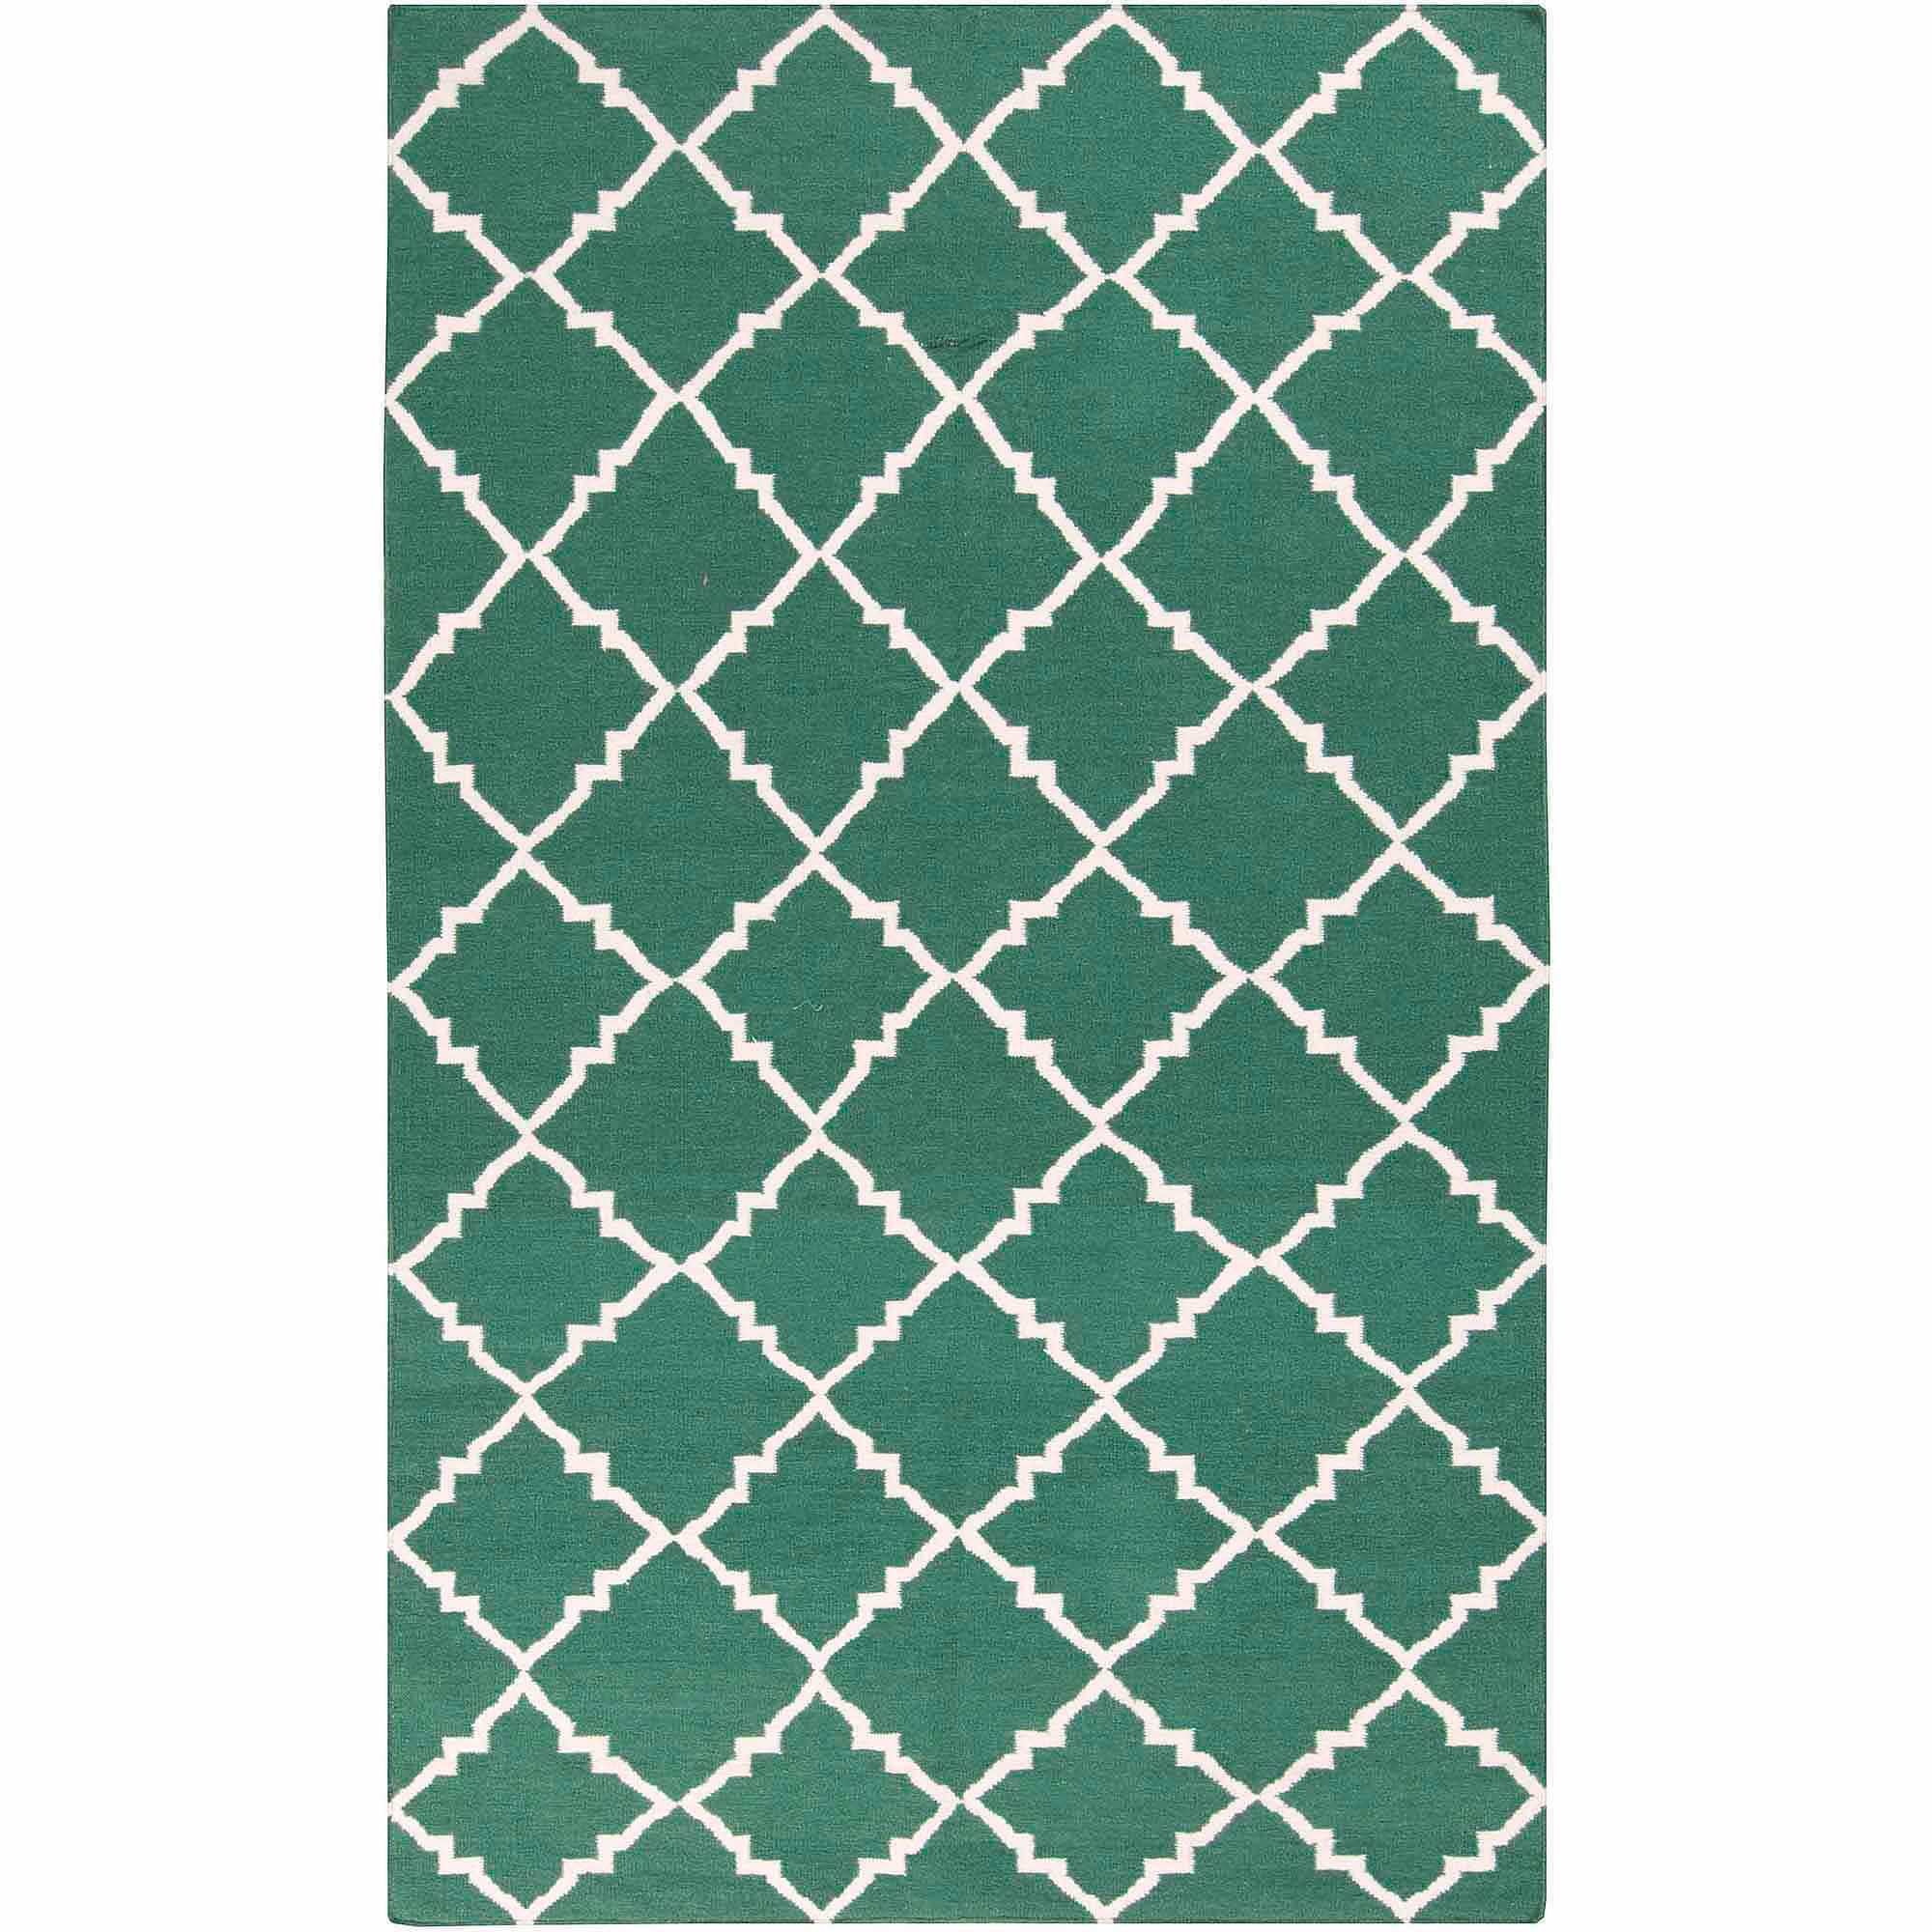 Art of Knot Prichard Hand Woven Gate Scroll Flatweave Wool Area Rug, Forest